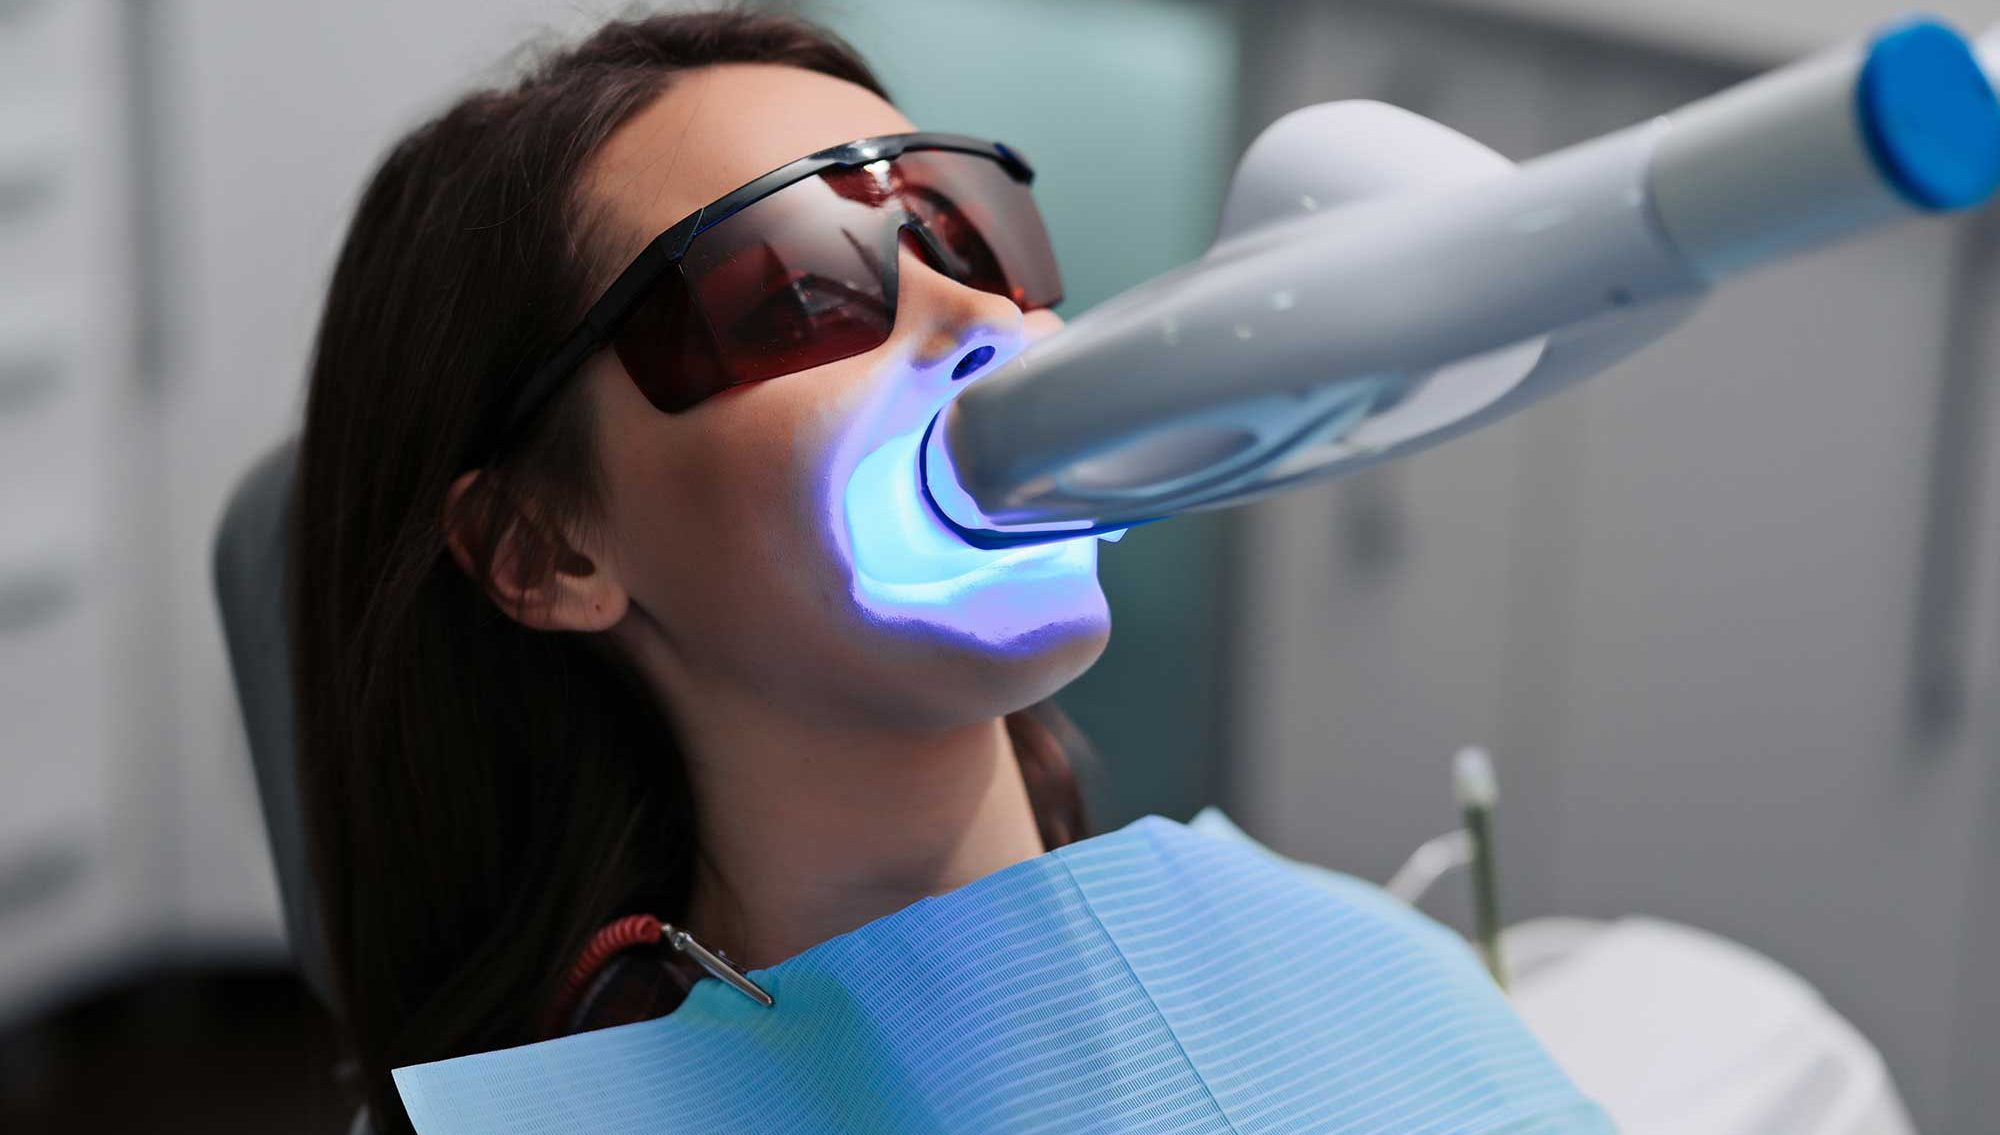 Philips Zoom tooth whitening